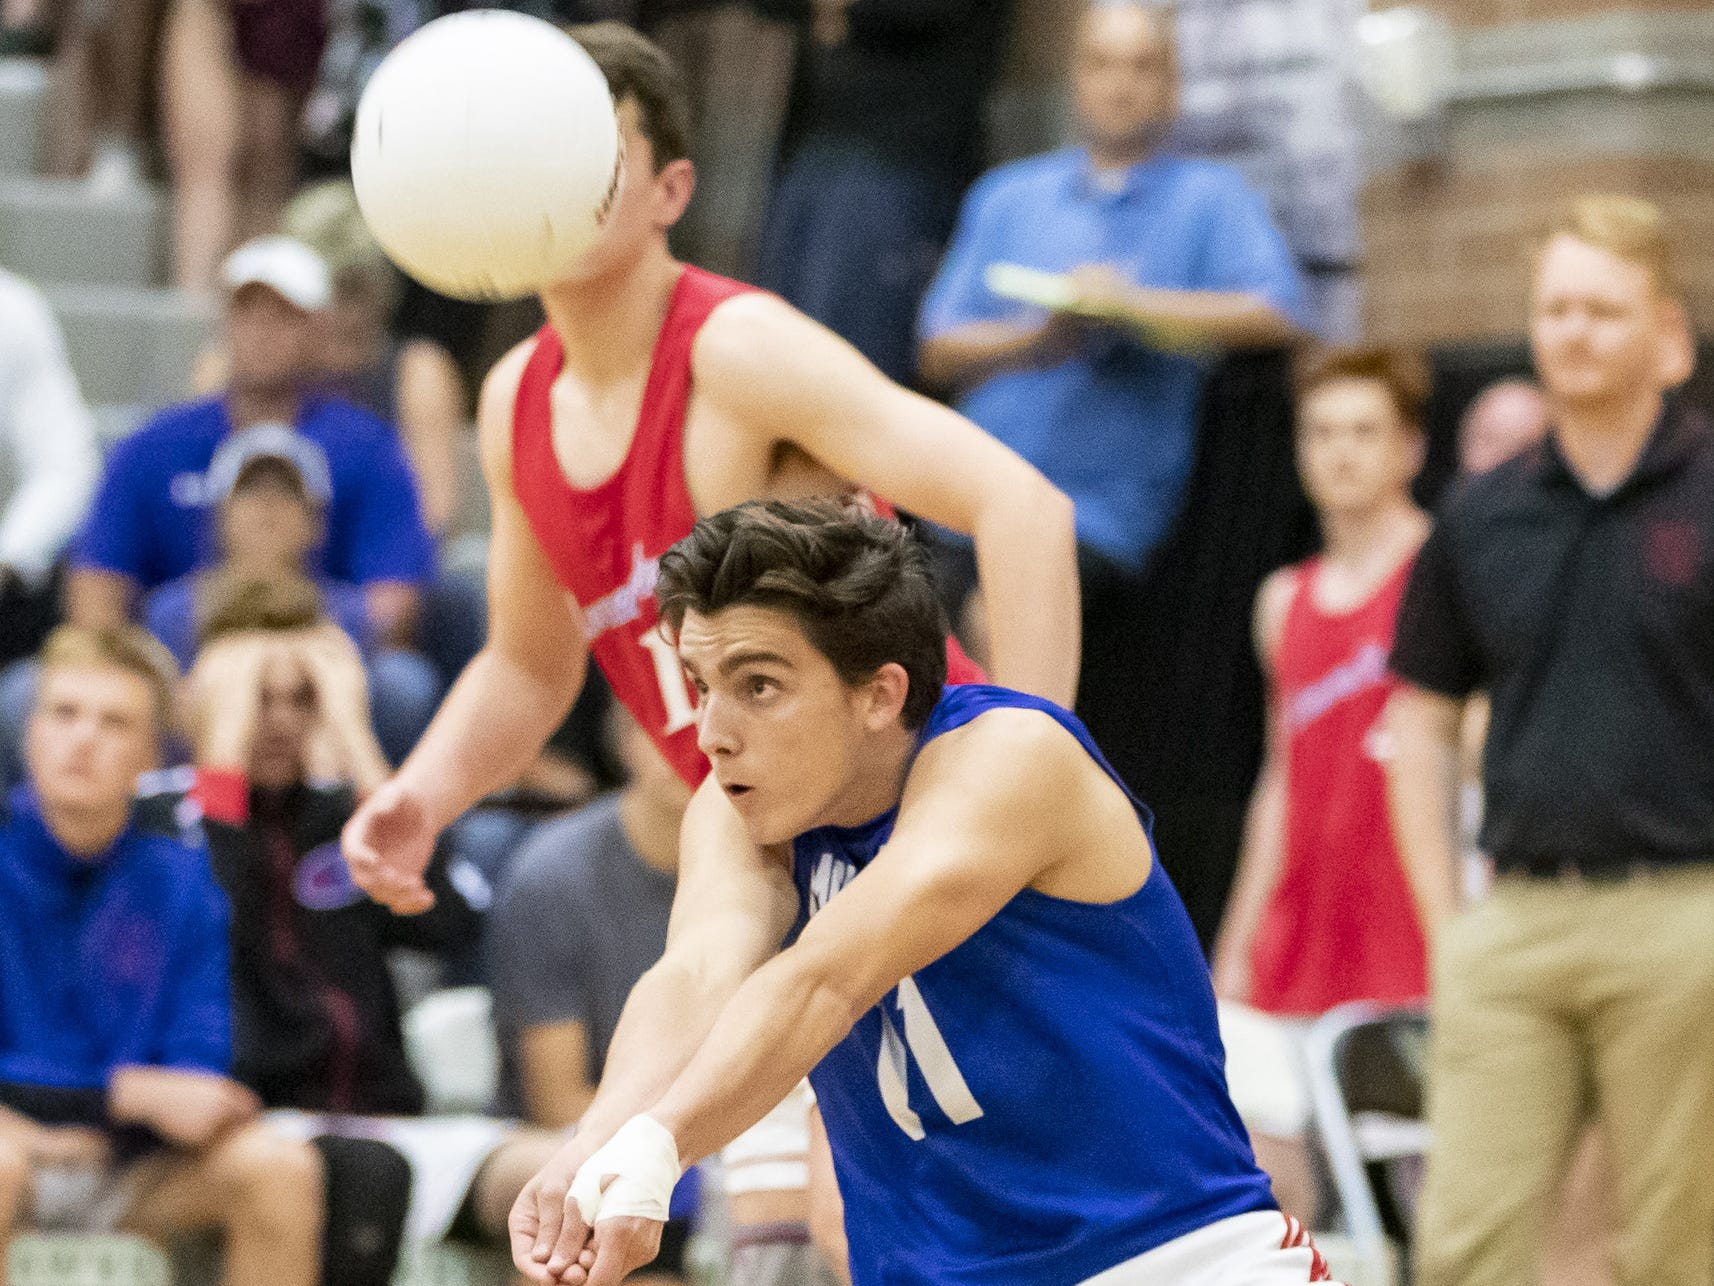 Senior libero Brigham Goodman (11) of the Mesa Mountain View Toros passes during the 6A Boys Volleyball State Championships against the Chandler Wolves at Higley High School on Saturday, May 11, 2019 in Gilbert, Arizona.